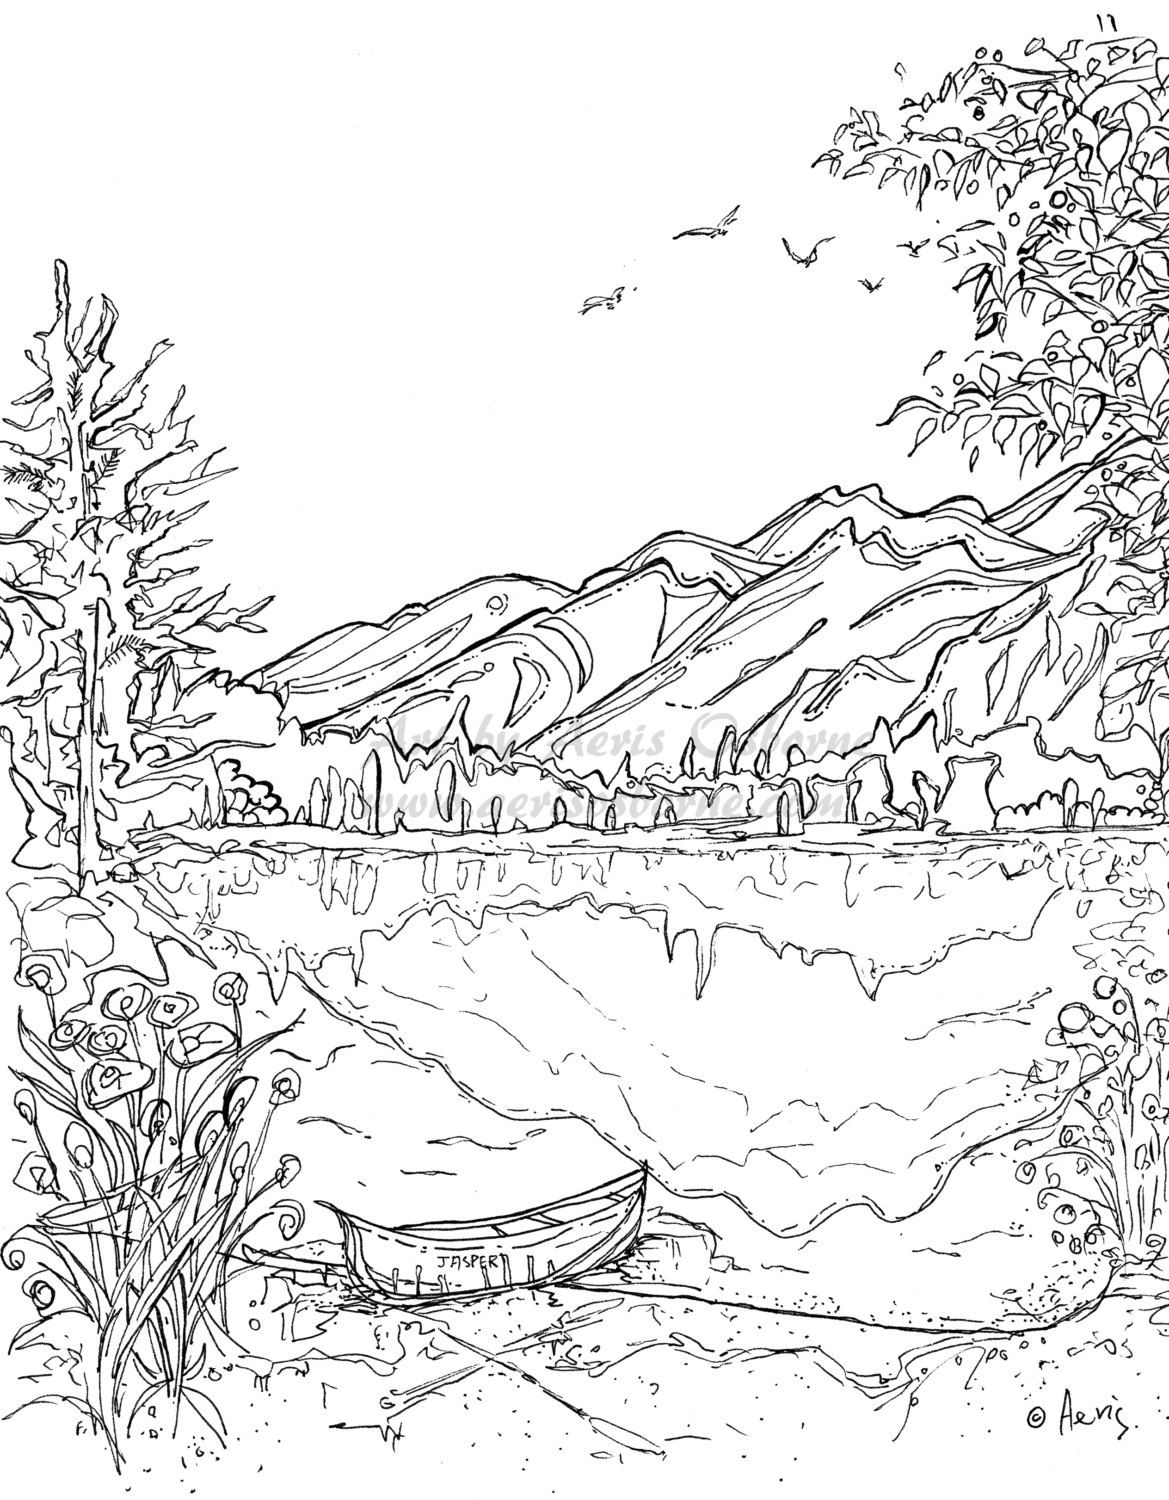 serenity jasper landscape printable coloring page by artbyaeris - Landscape Coloring Pages